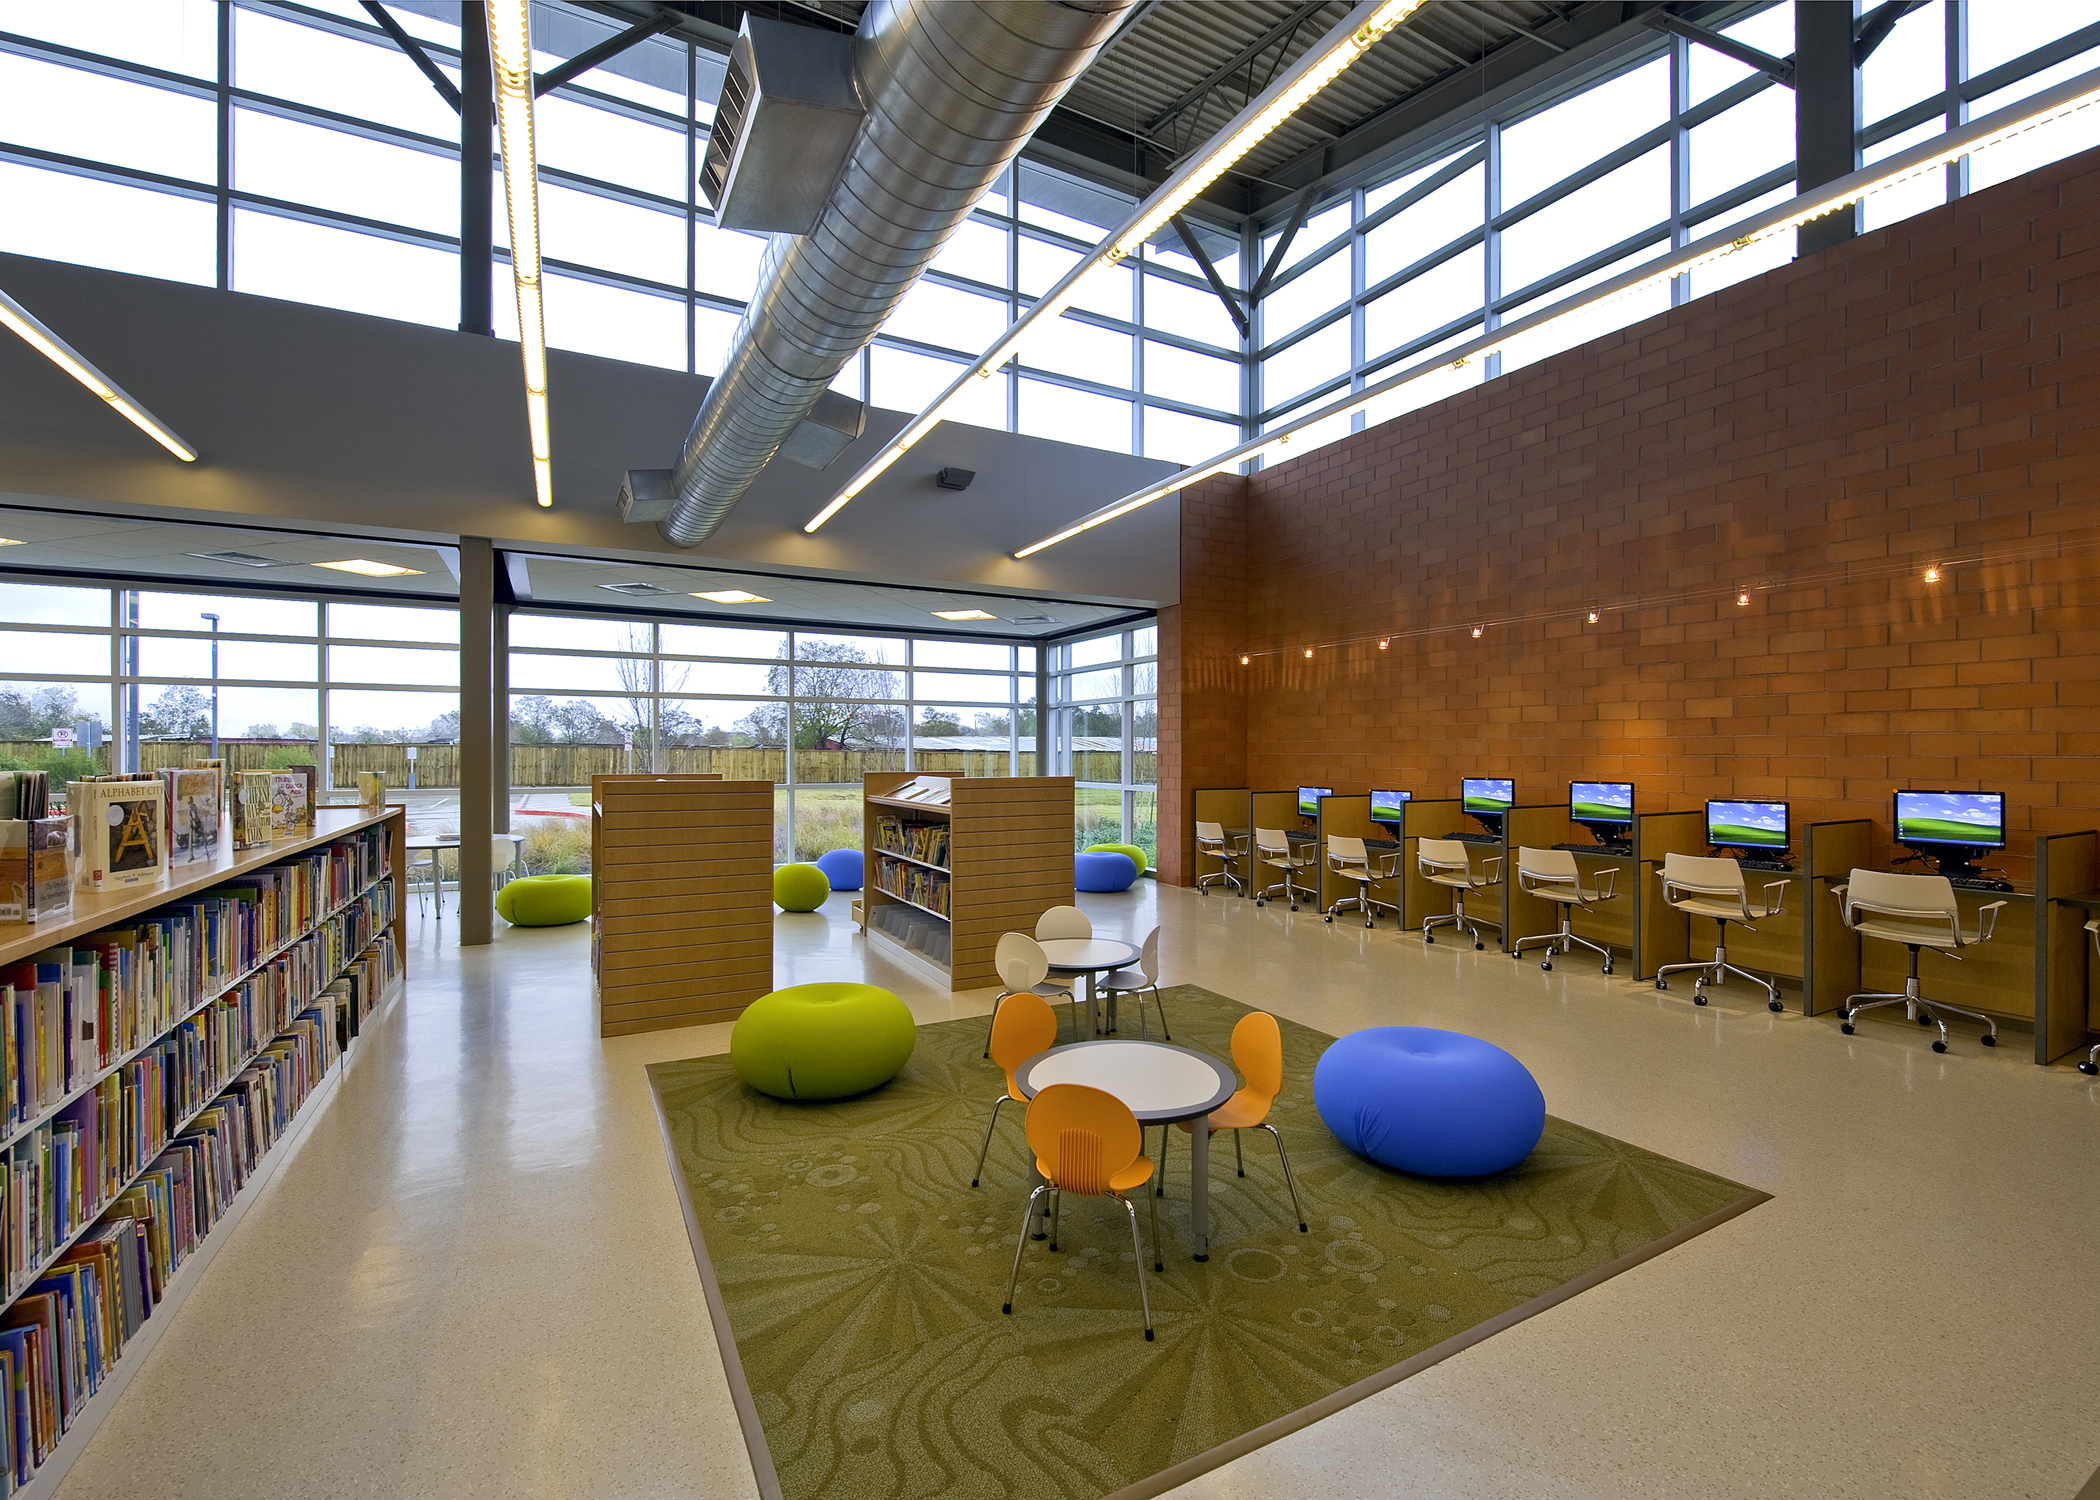 08_BRACEWELL_Children's Reading Area.jpg